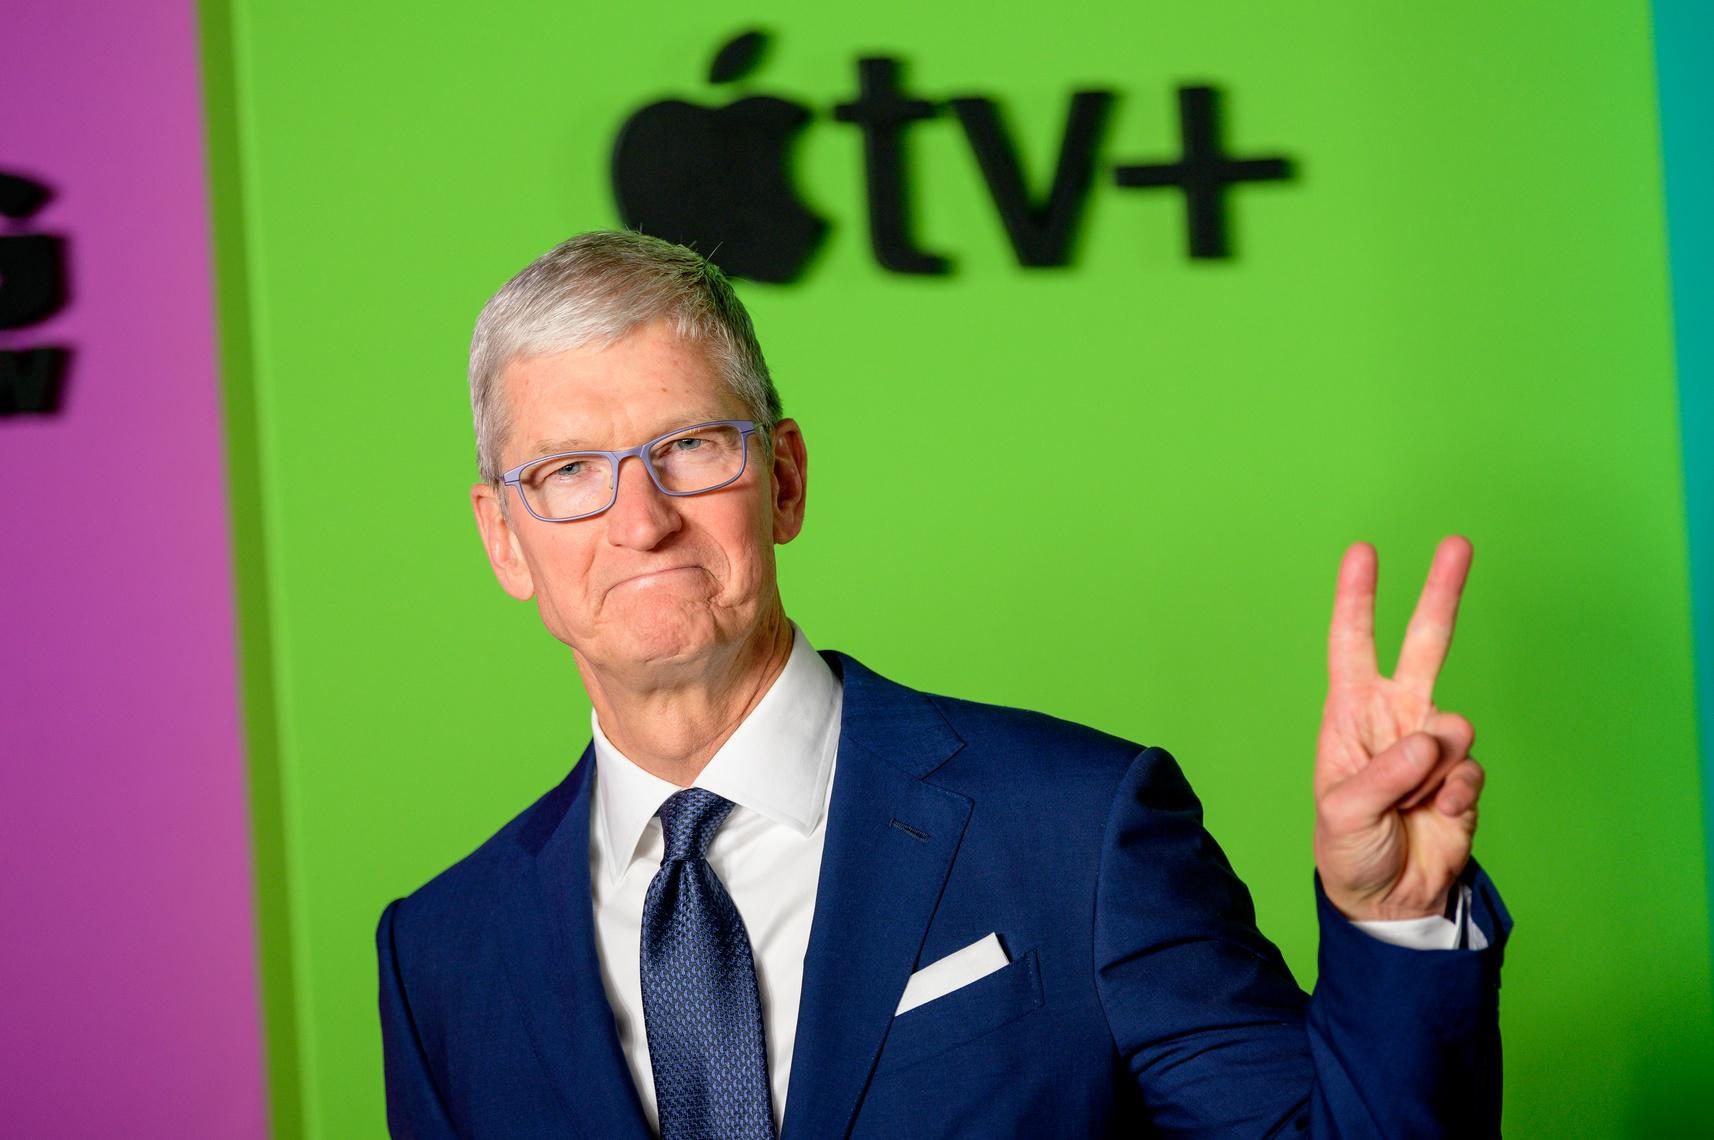 Apple TV+'s ″The Morning Show″ World Premiere